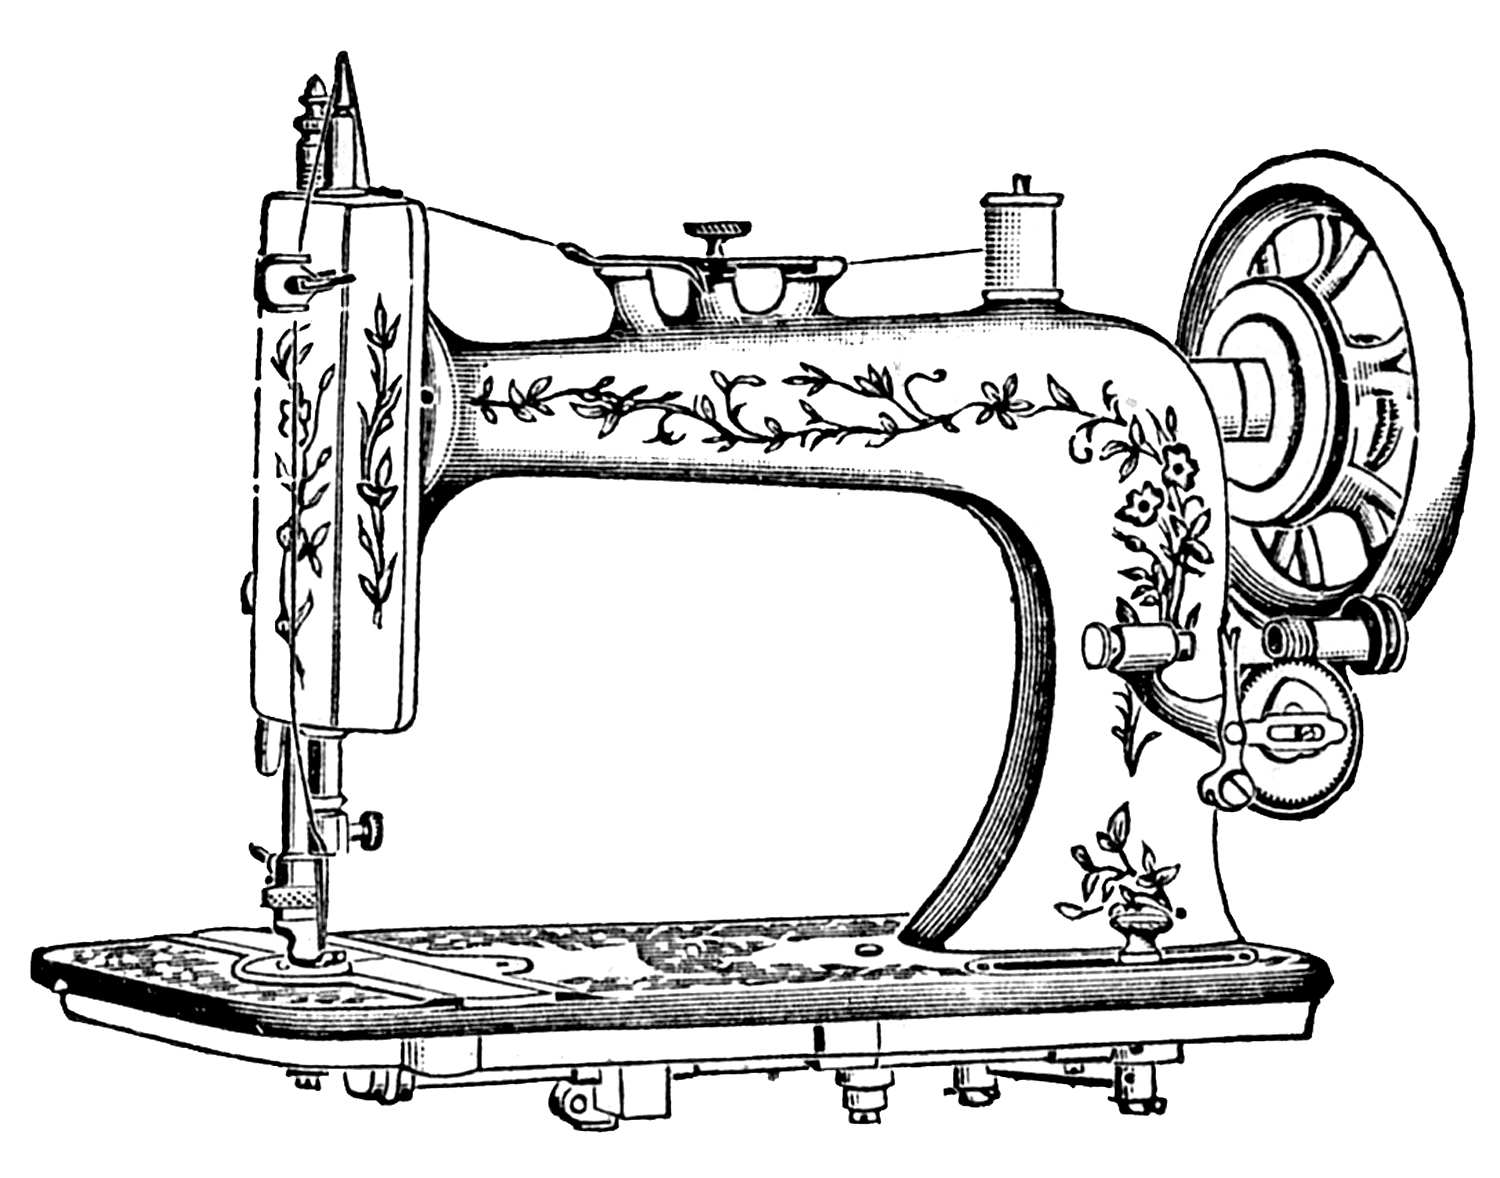 Clipart for sewing patterns picture library library 17 Best Photos of Art Sewing Patterns - Sewing Machine Clip Art ... picture library library